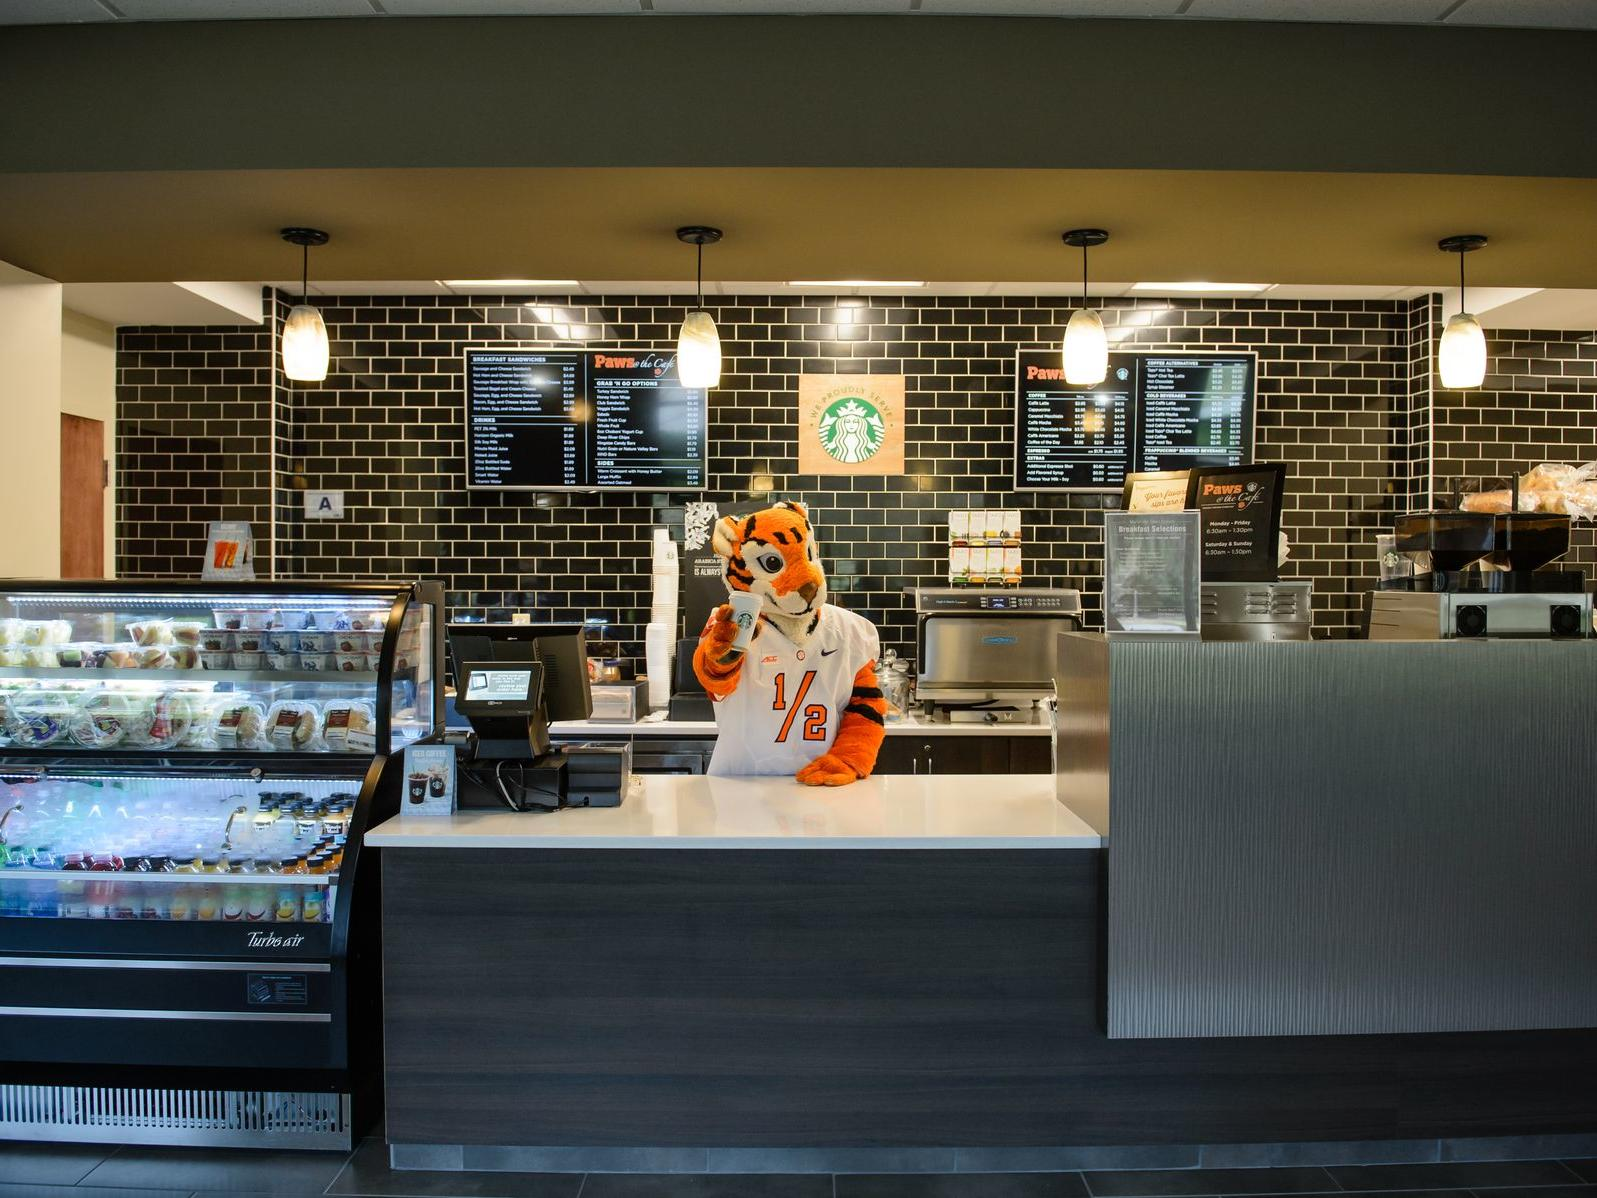 tiger mascot at cafeteria register